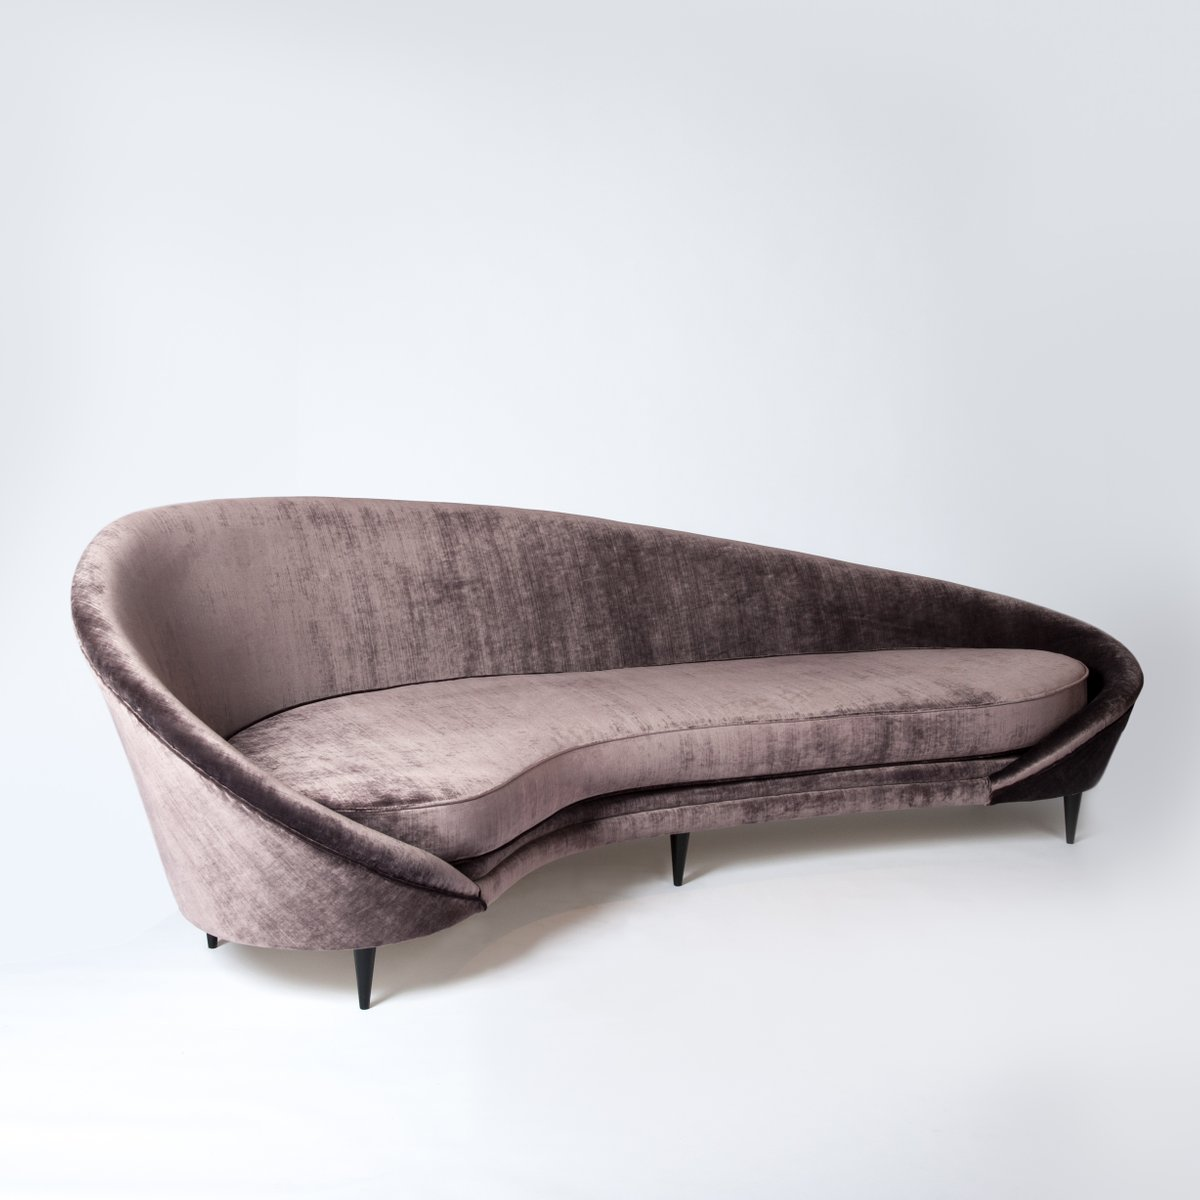 Vintage curved sofa by federico munari 1960s for sale at for Vintage sectional sofa craigslist